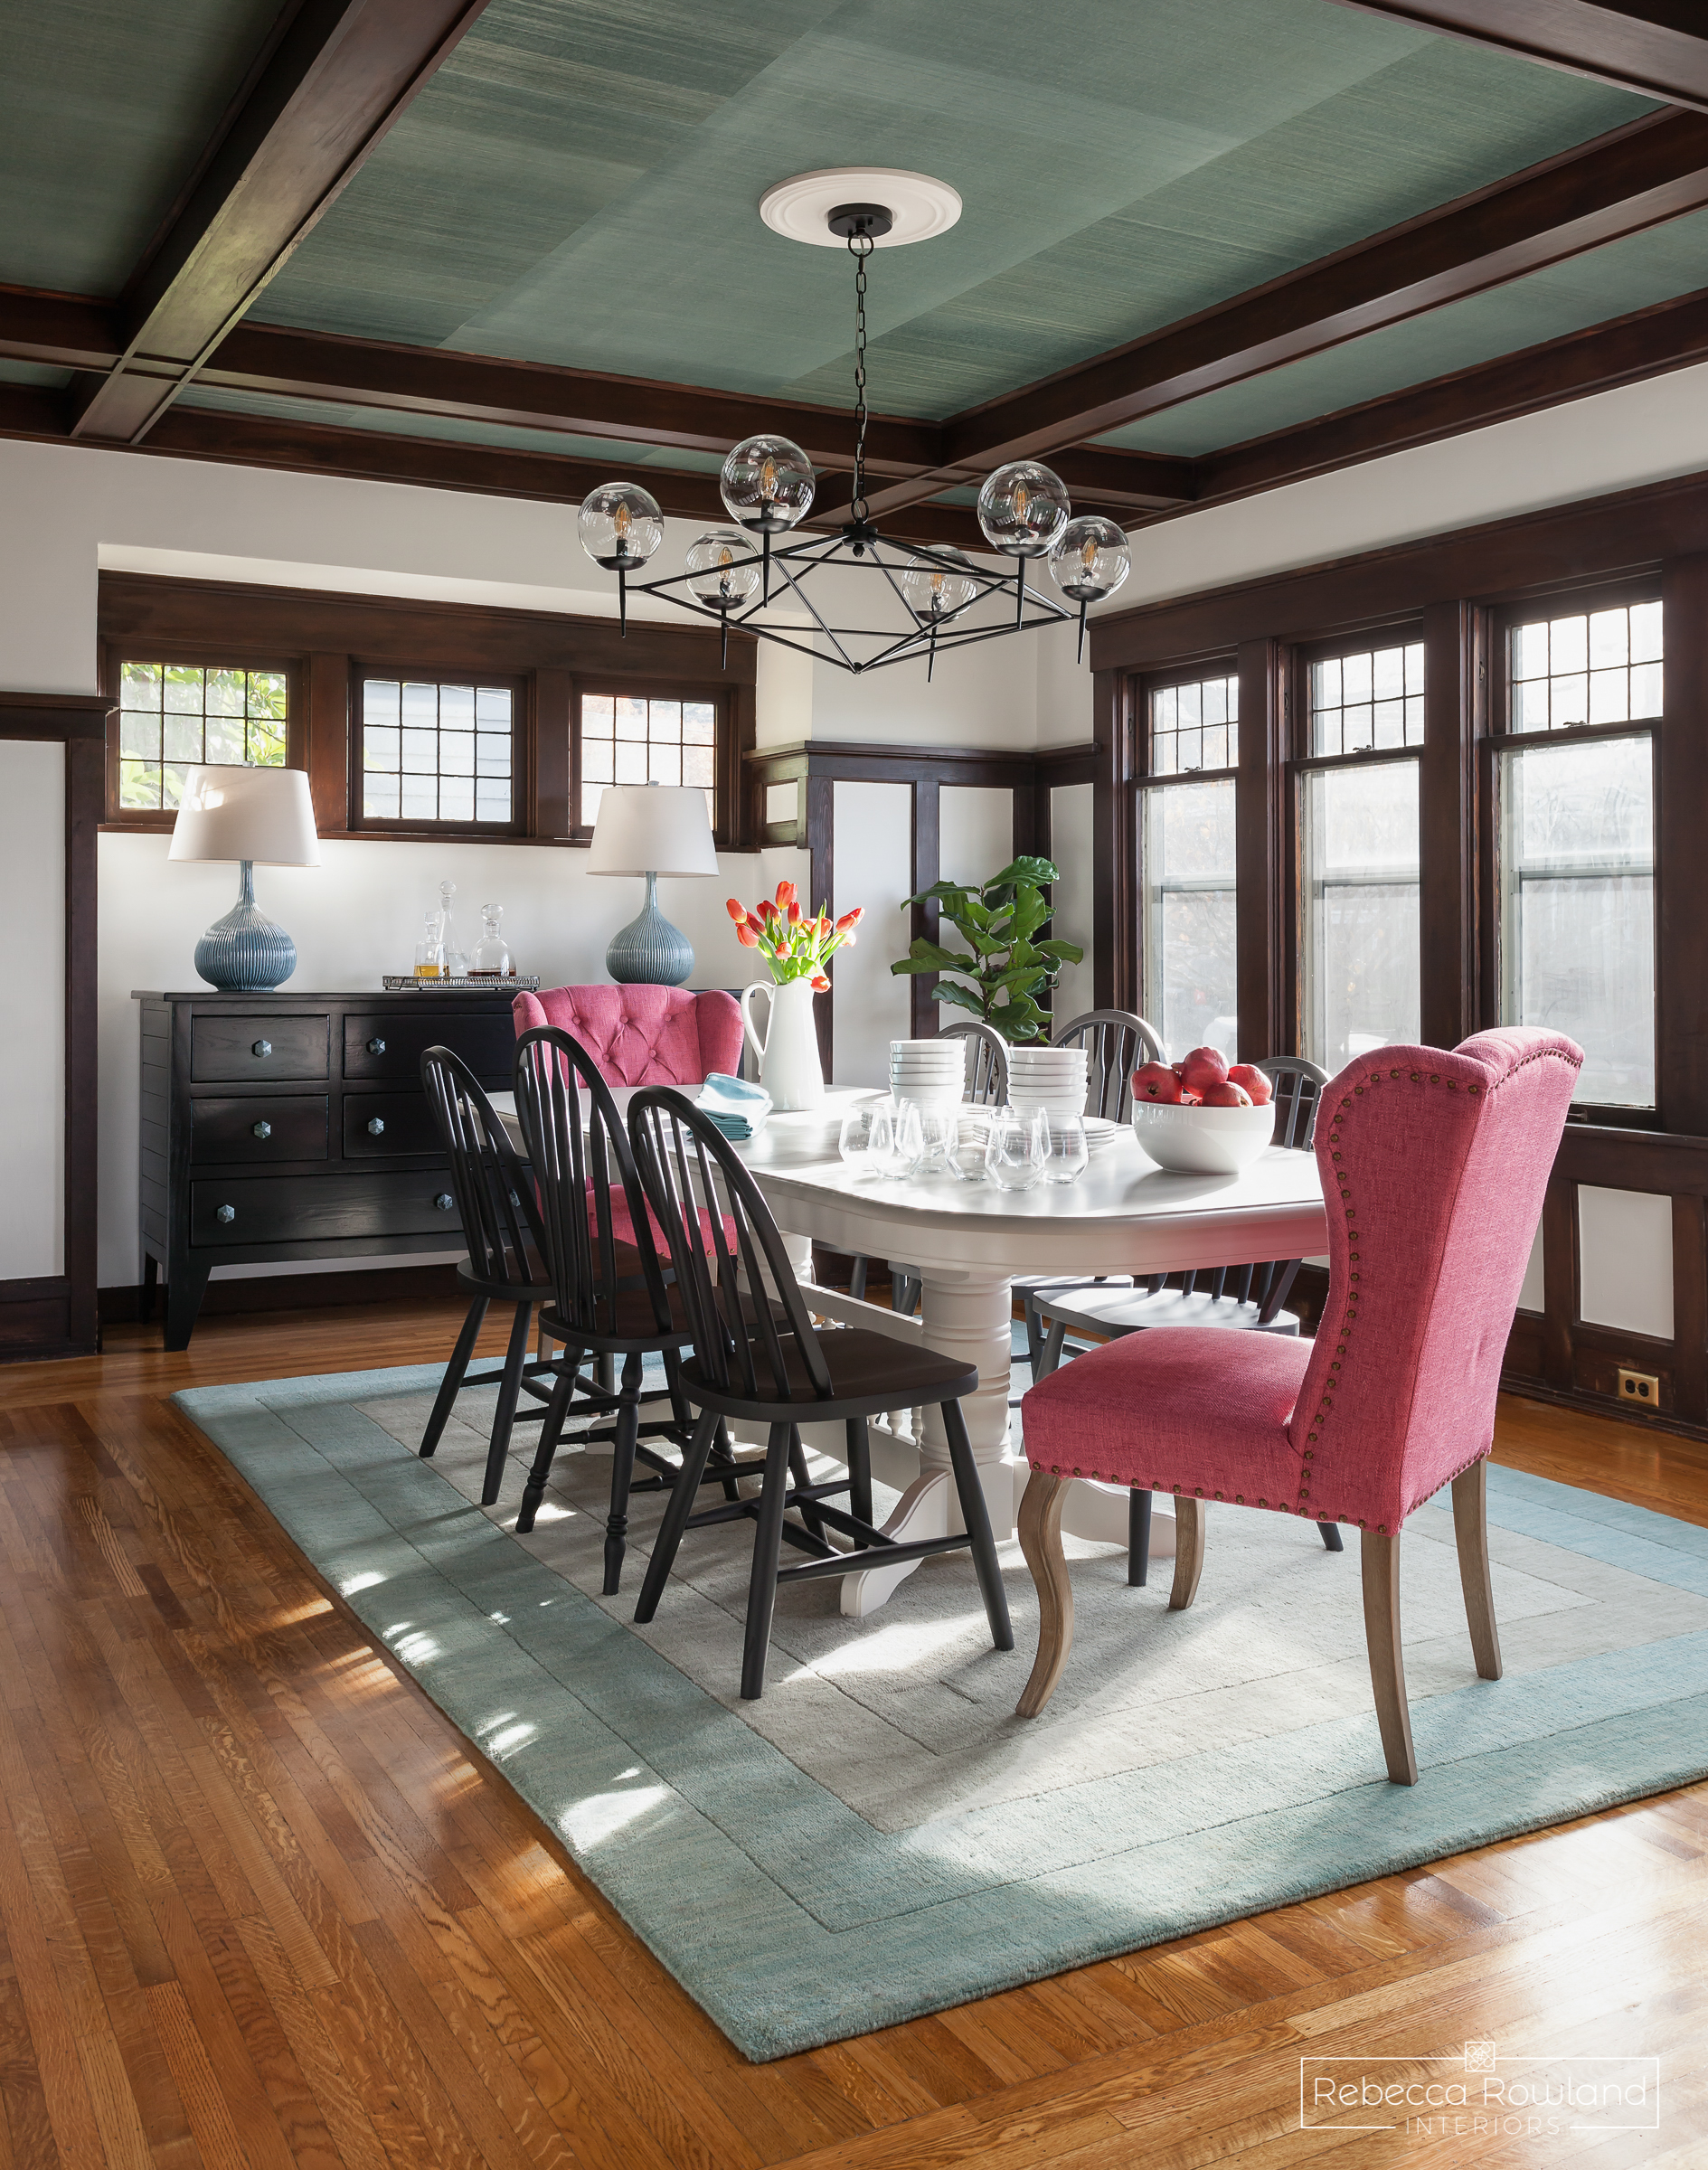 Rebecca Rowland Interiors _Roosevelt_Craftsman_seattle_interior_design_cozy_den_decor_stying